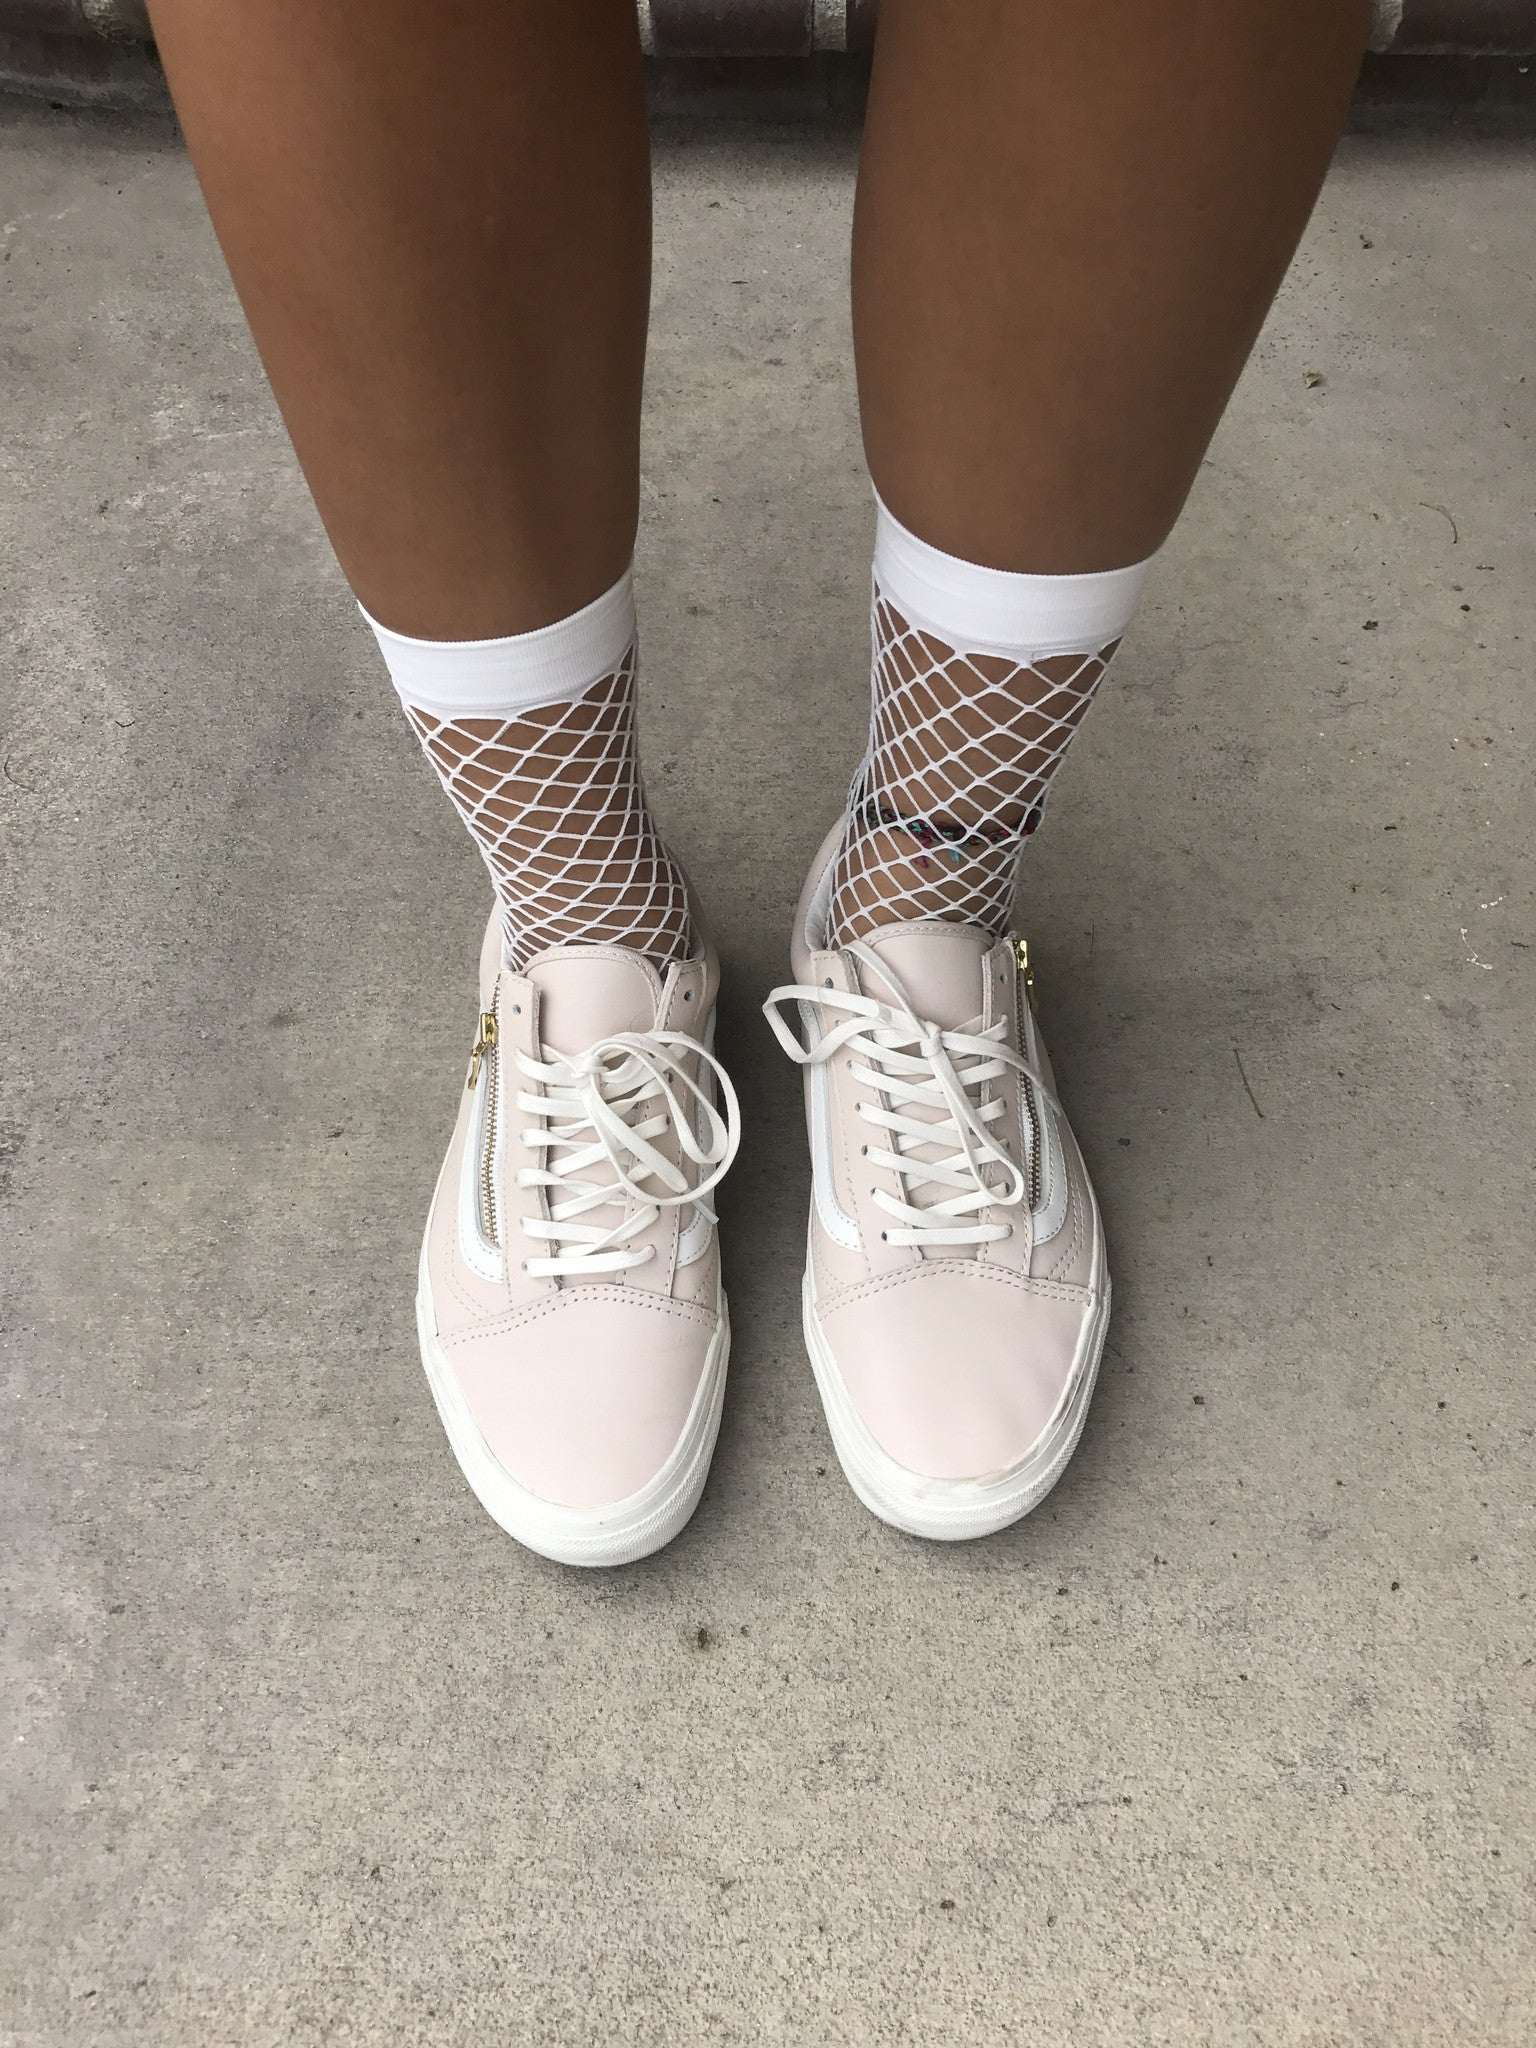 White Fishnet Socks